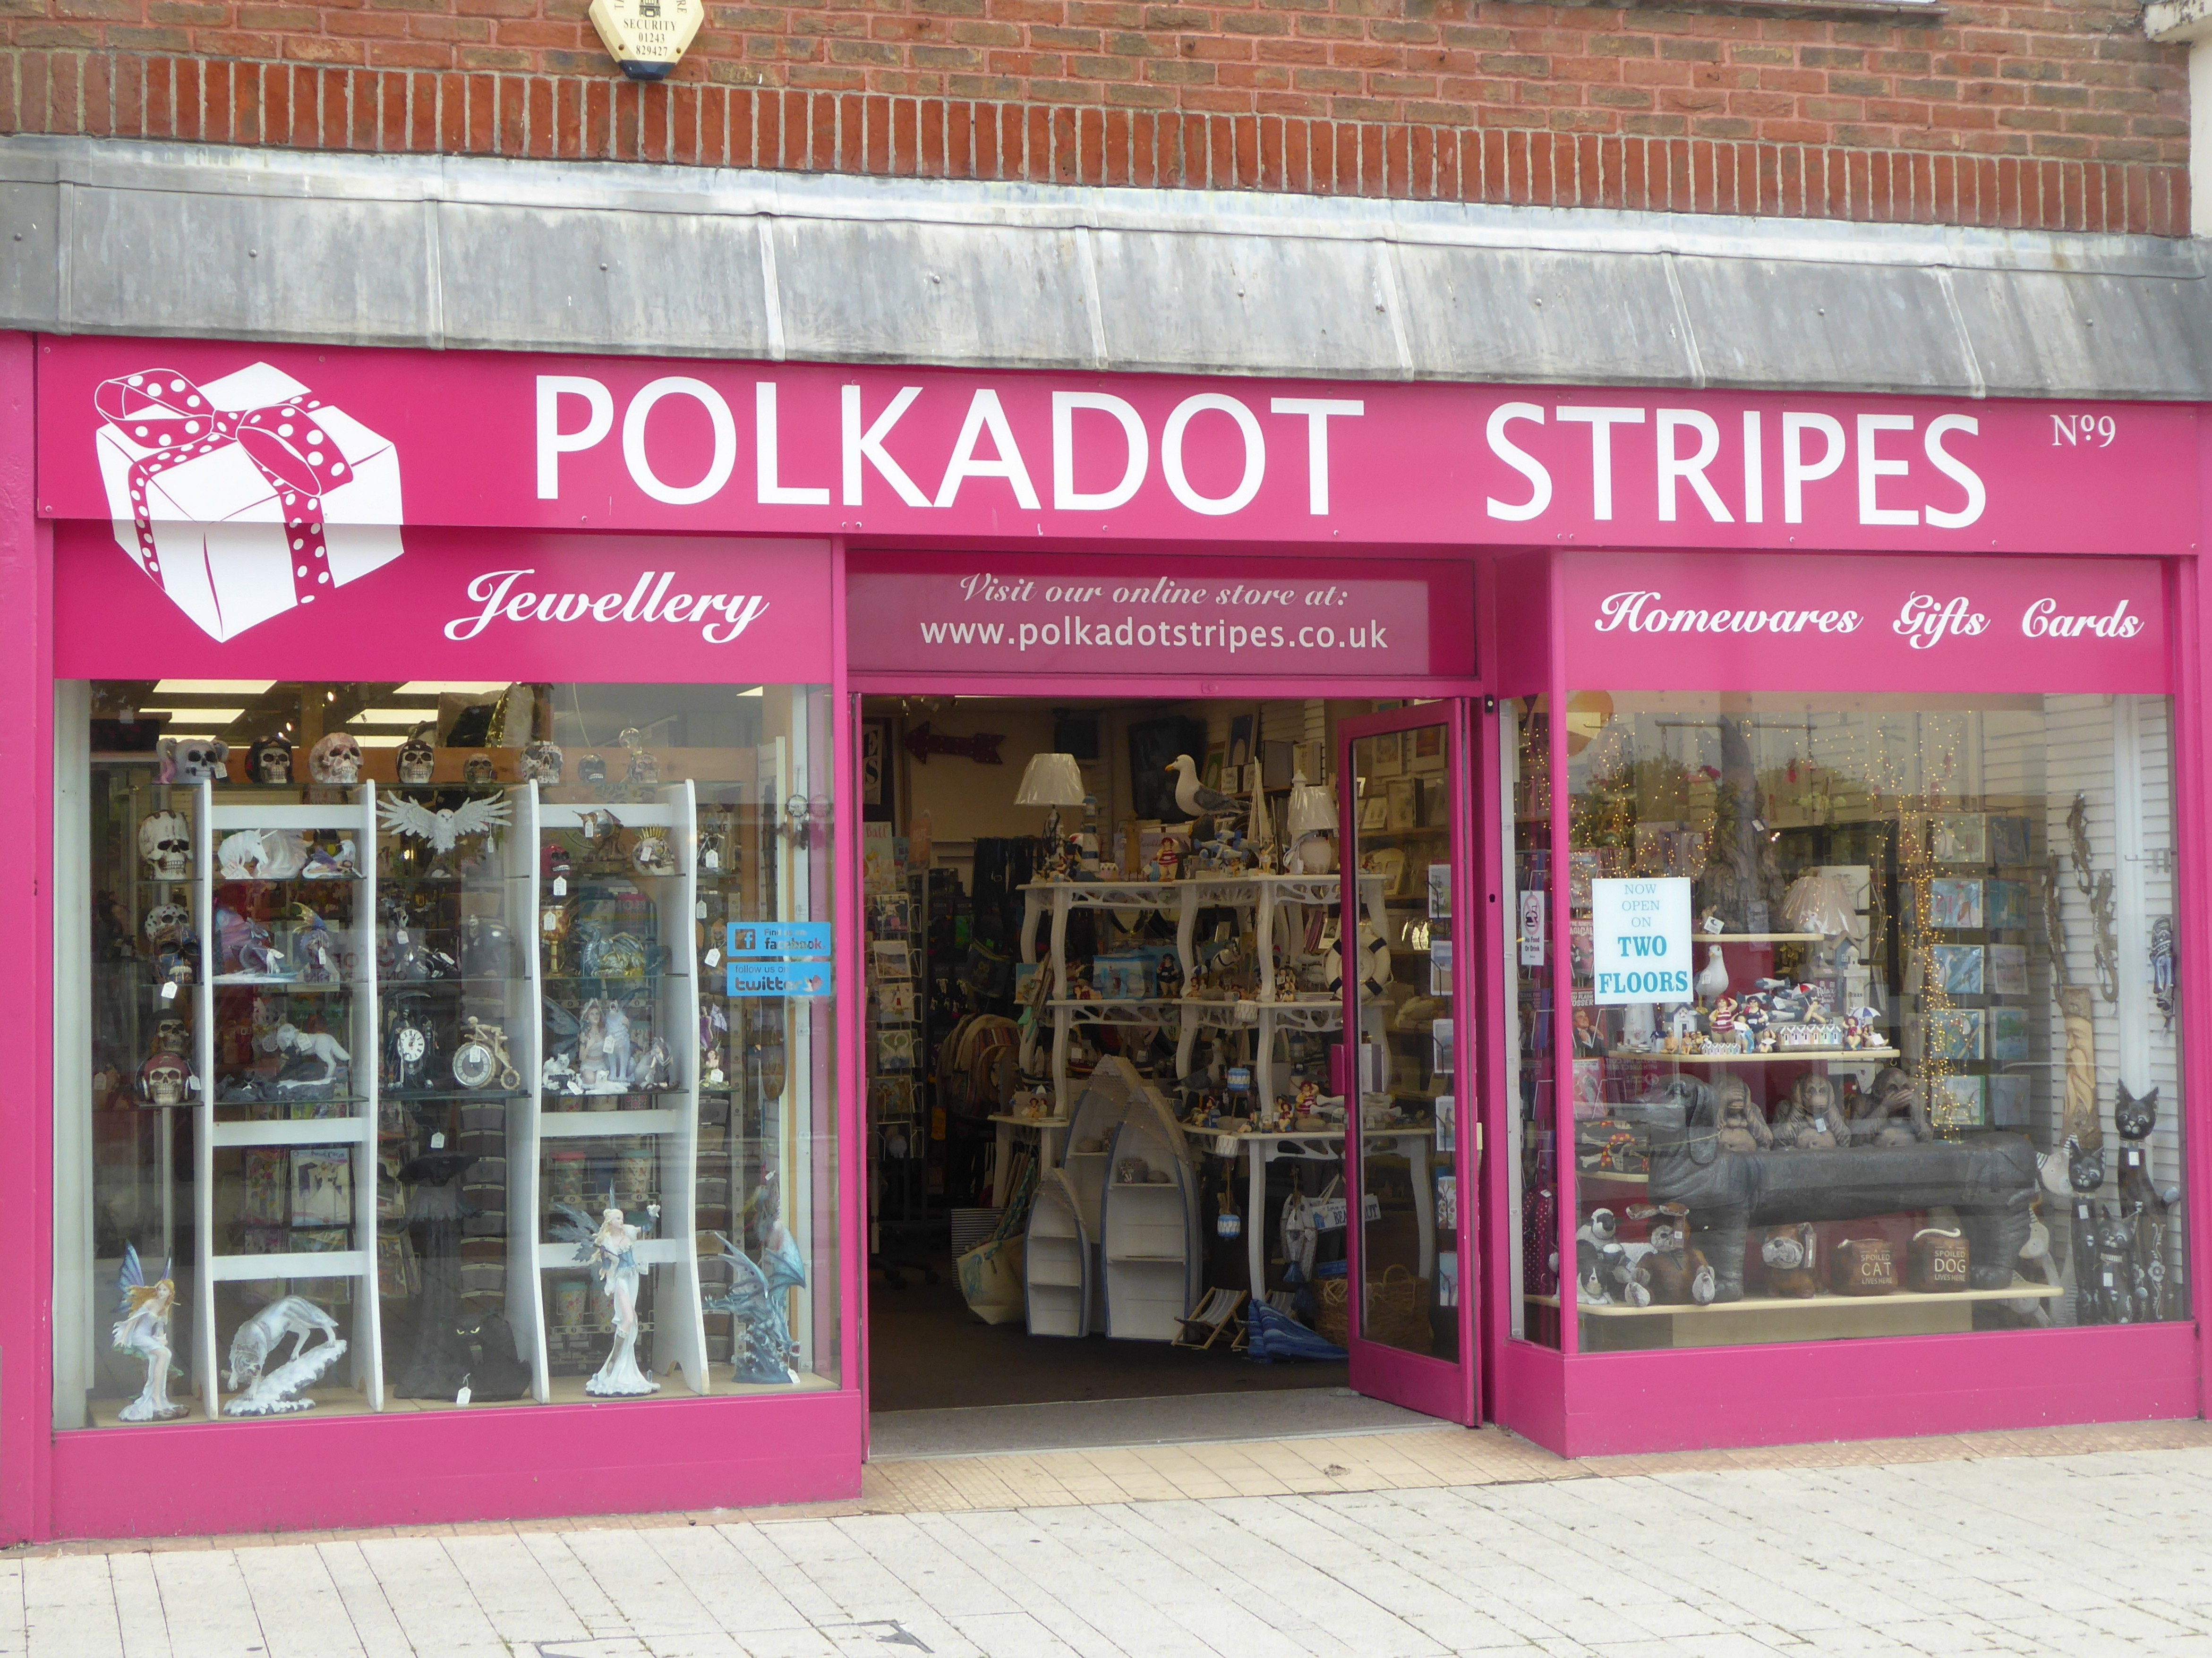 Polkadot Stripes Shop Front August 2019